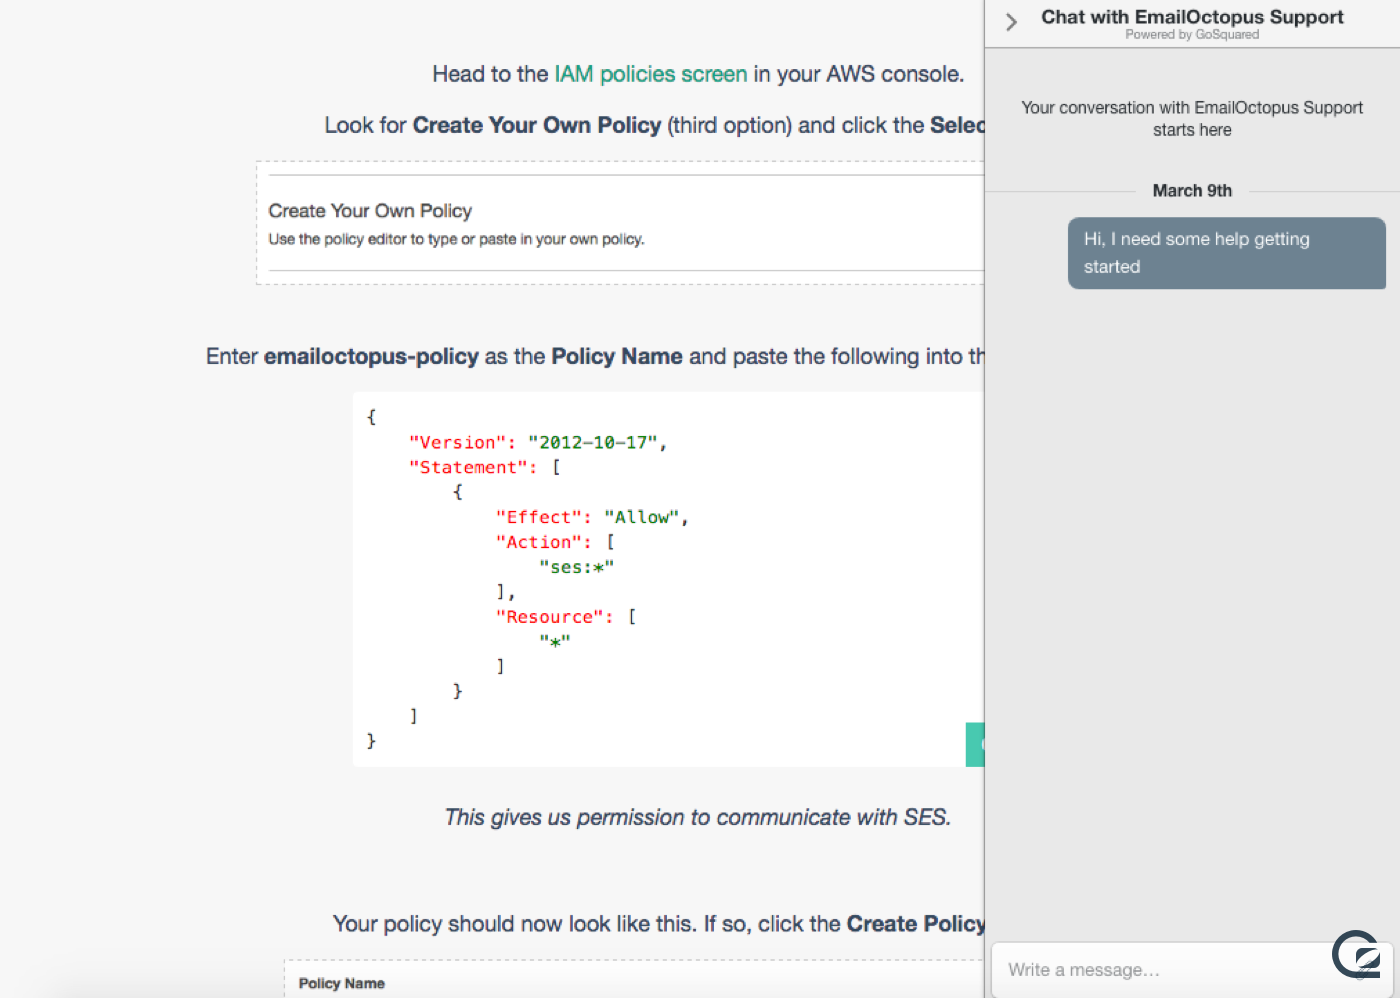 Screenshot of GoSquared Live Chat on the EmailOctopus website